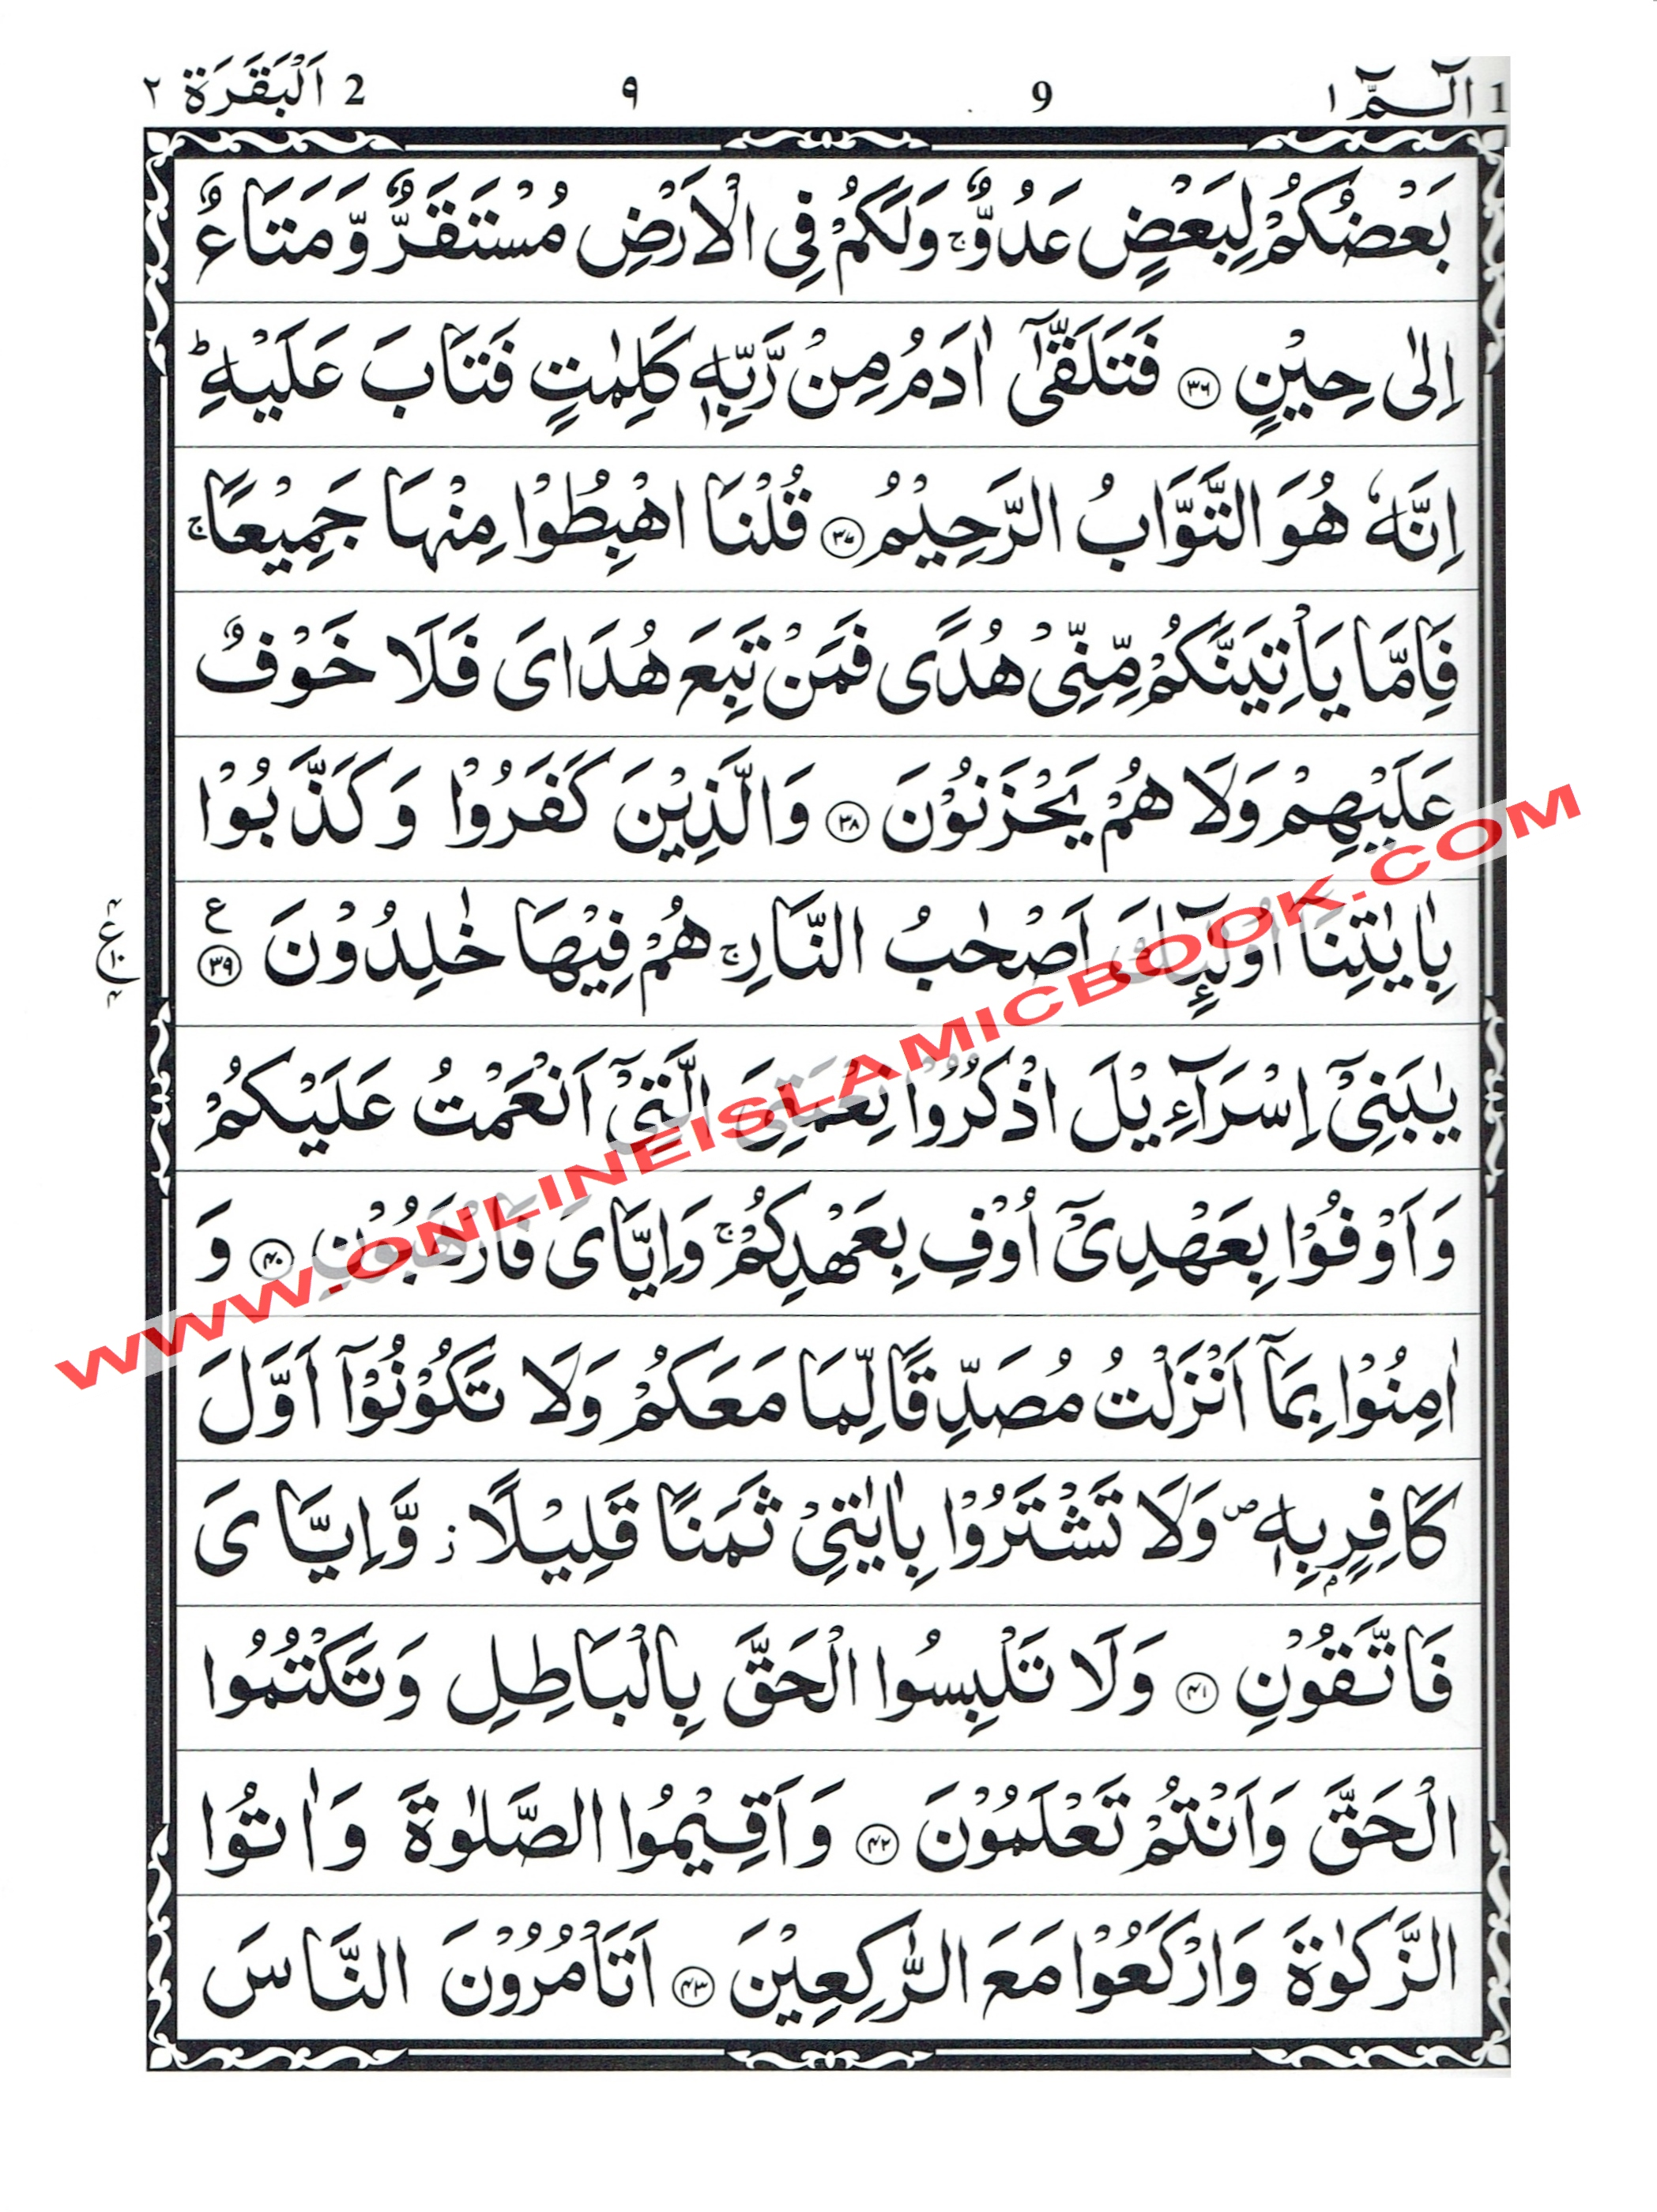 quran-al-kareem-arabic-only-13-lines-pakistani-indian-persian-script-large-words-ref-3-5-.jpg